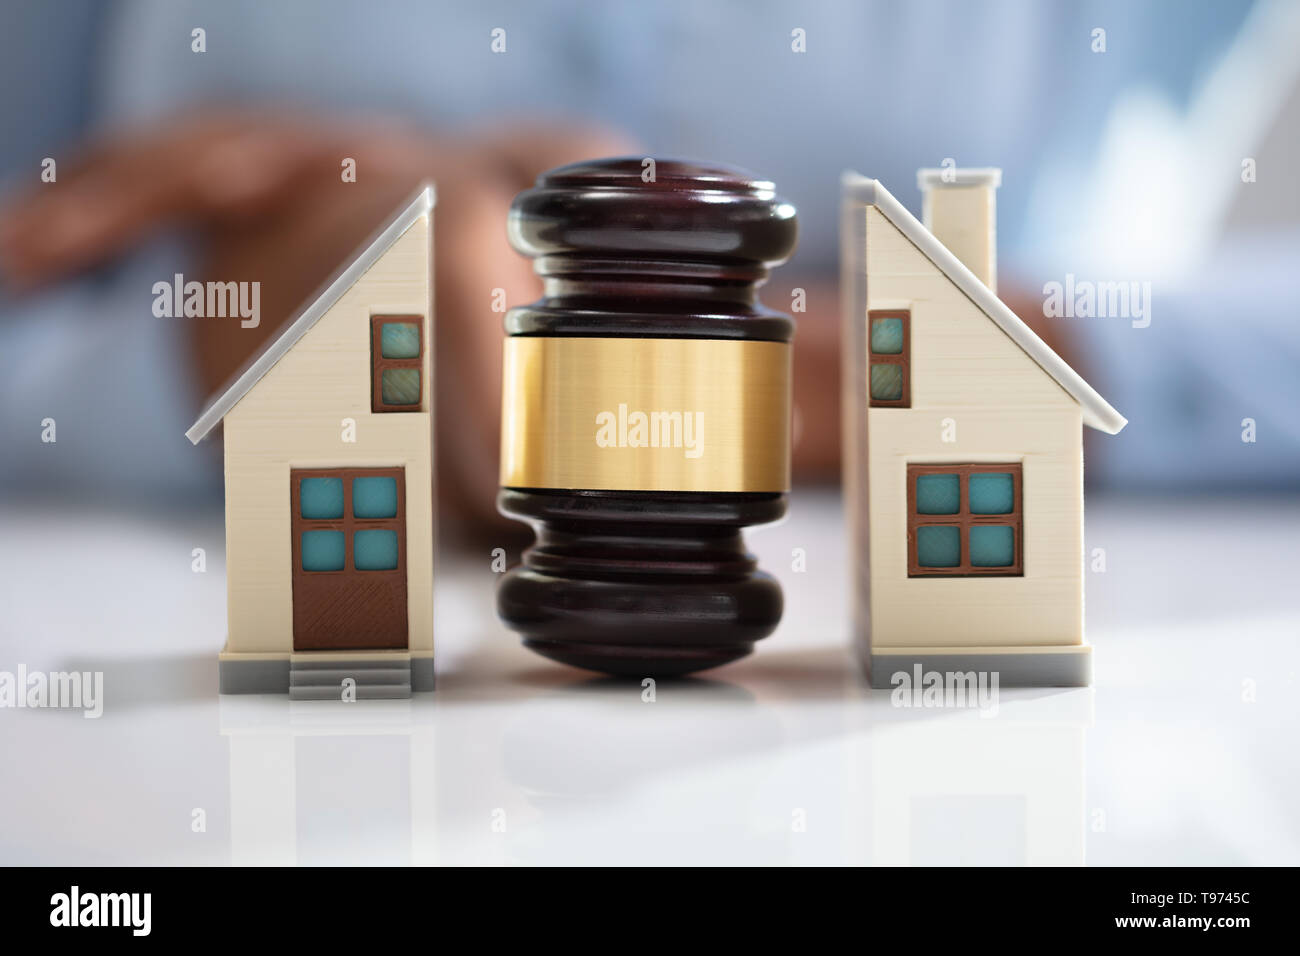 Close-up Of A Judge Striking Gavel Between Split House Over Reflective Desk - Stock Image